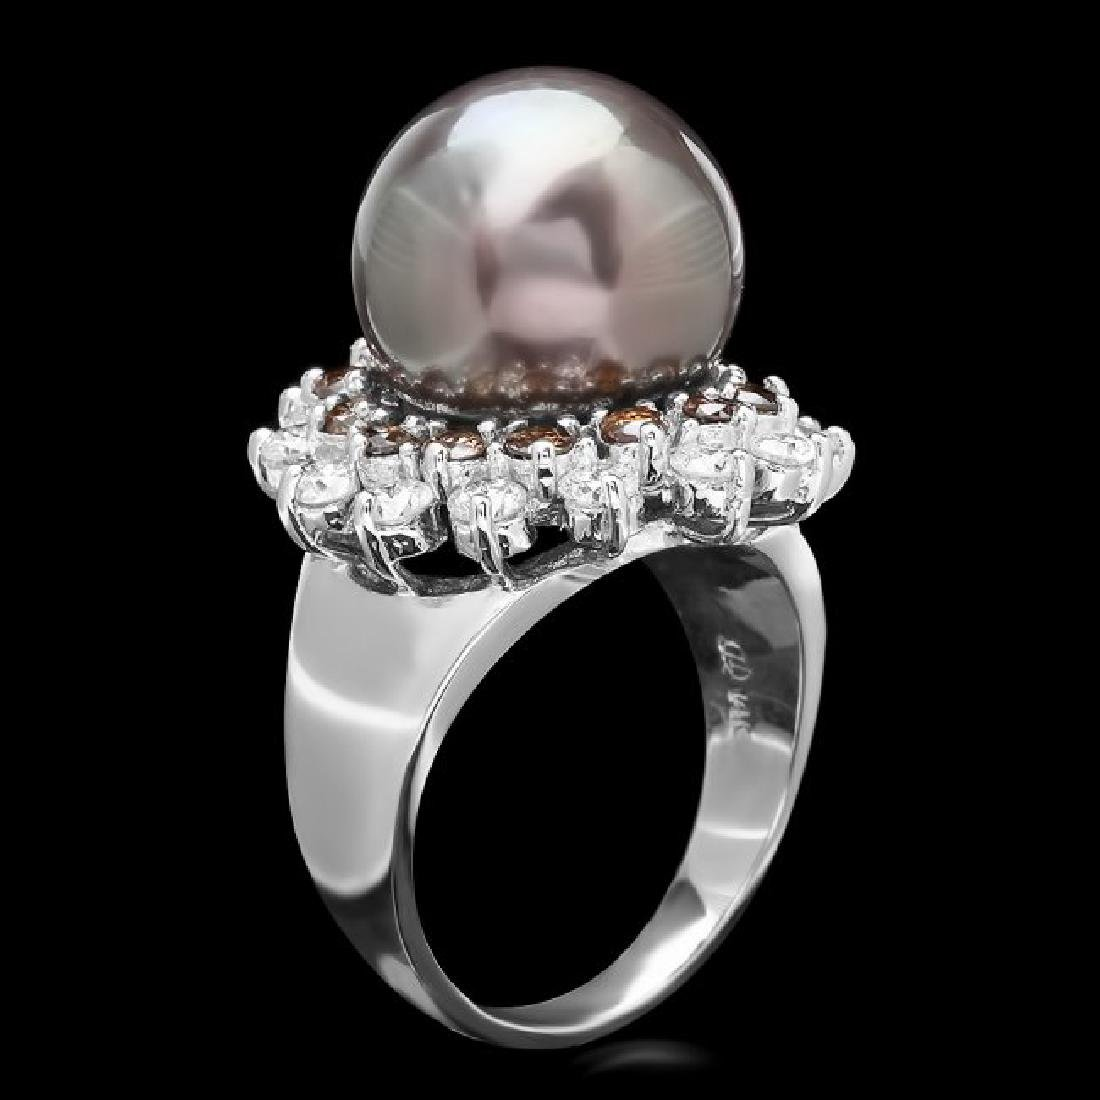 14k White Gold 13mm Pearl 1.6ct Diamond Ring - 2